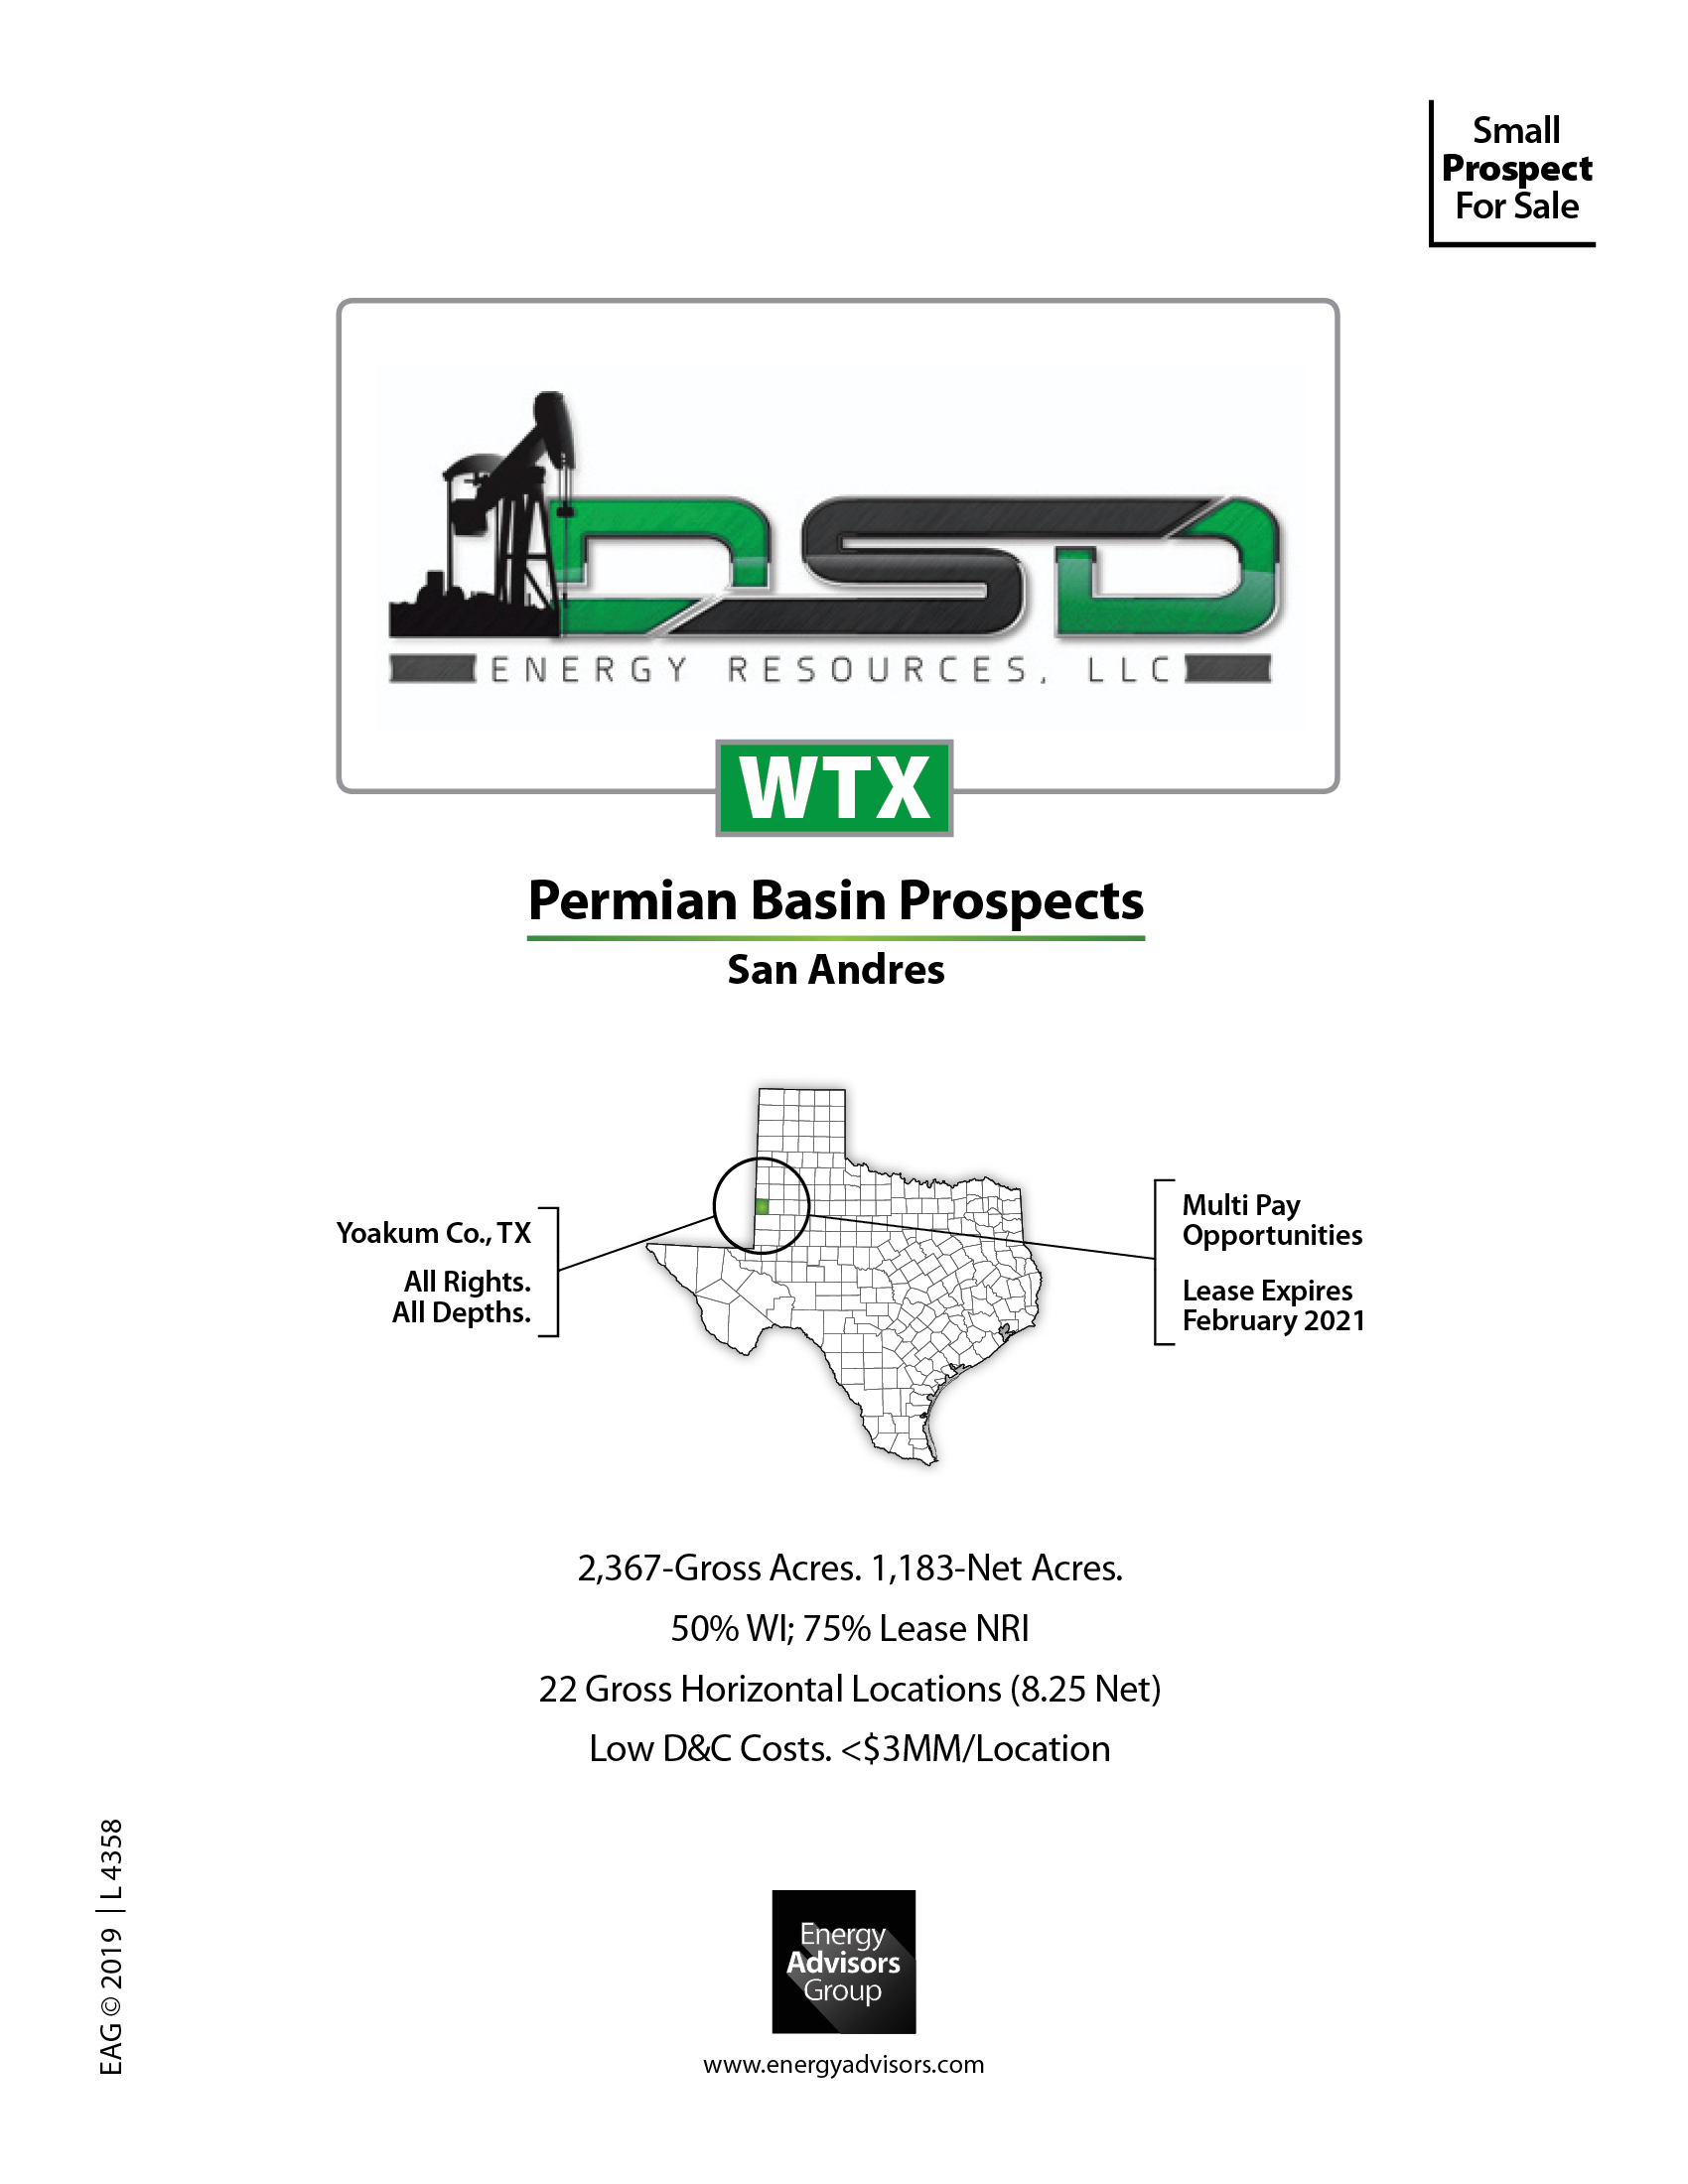 Marketed: Permian Basin San Andres Prospect In Yoakum County, Texas